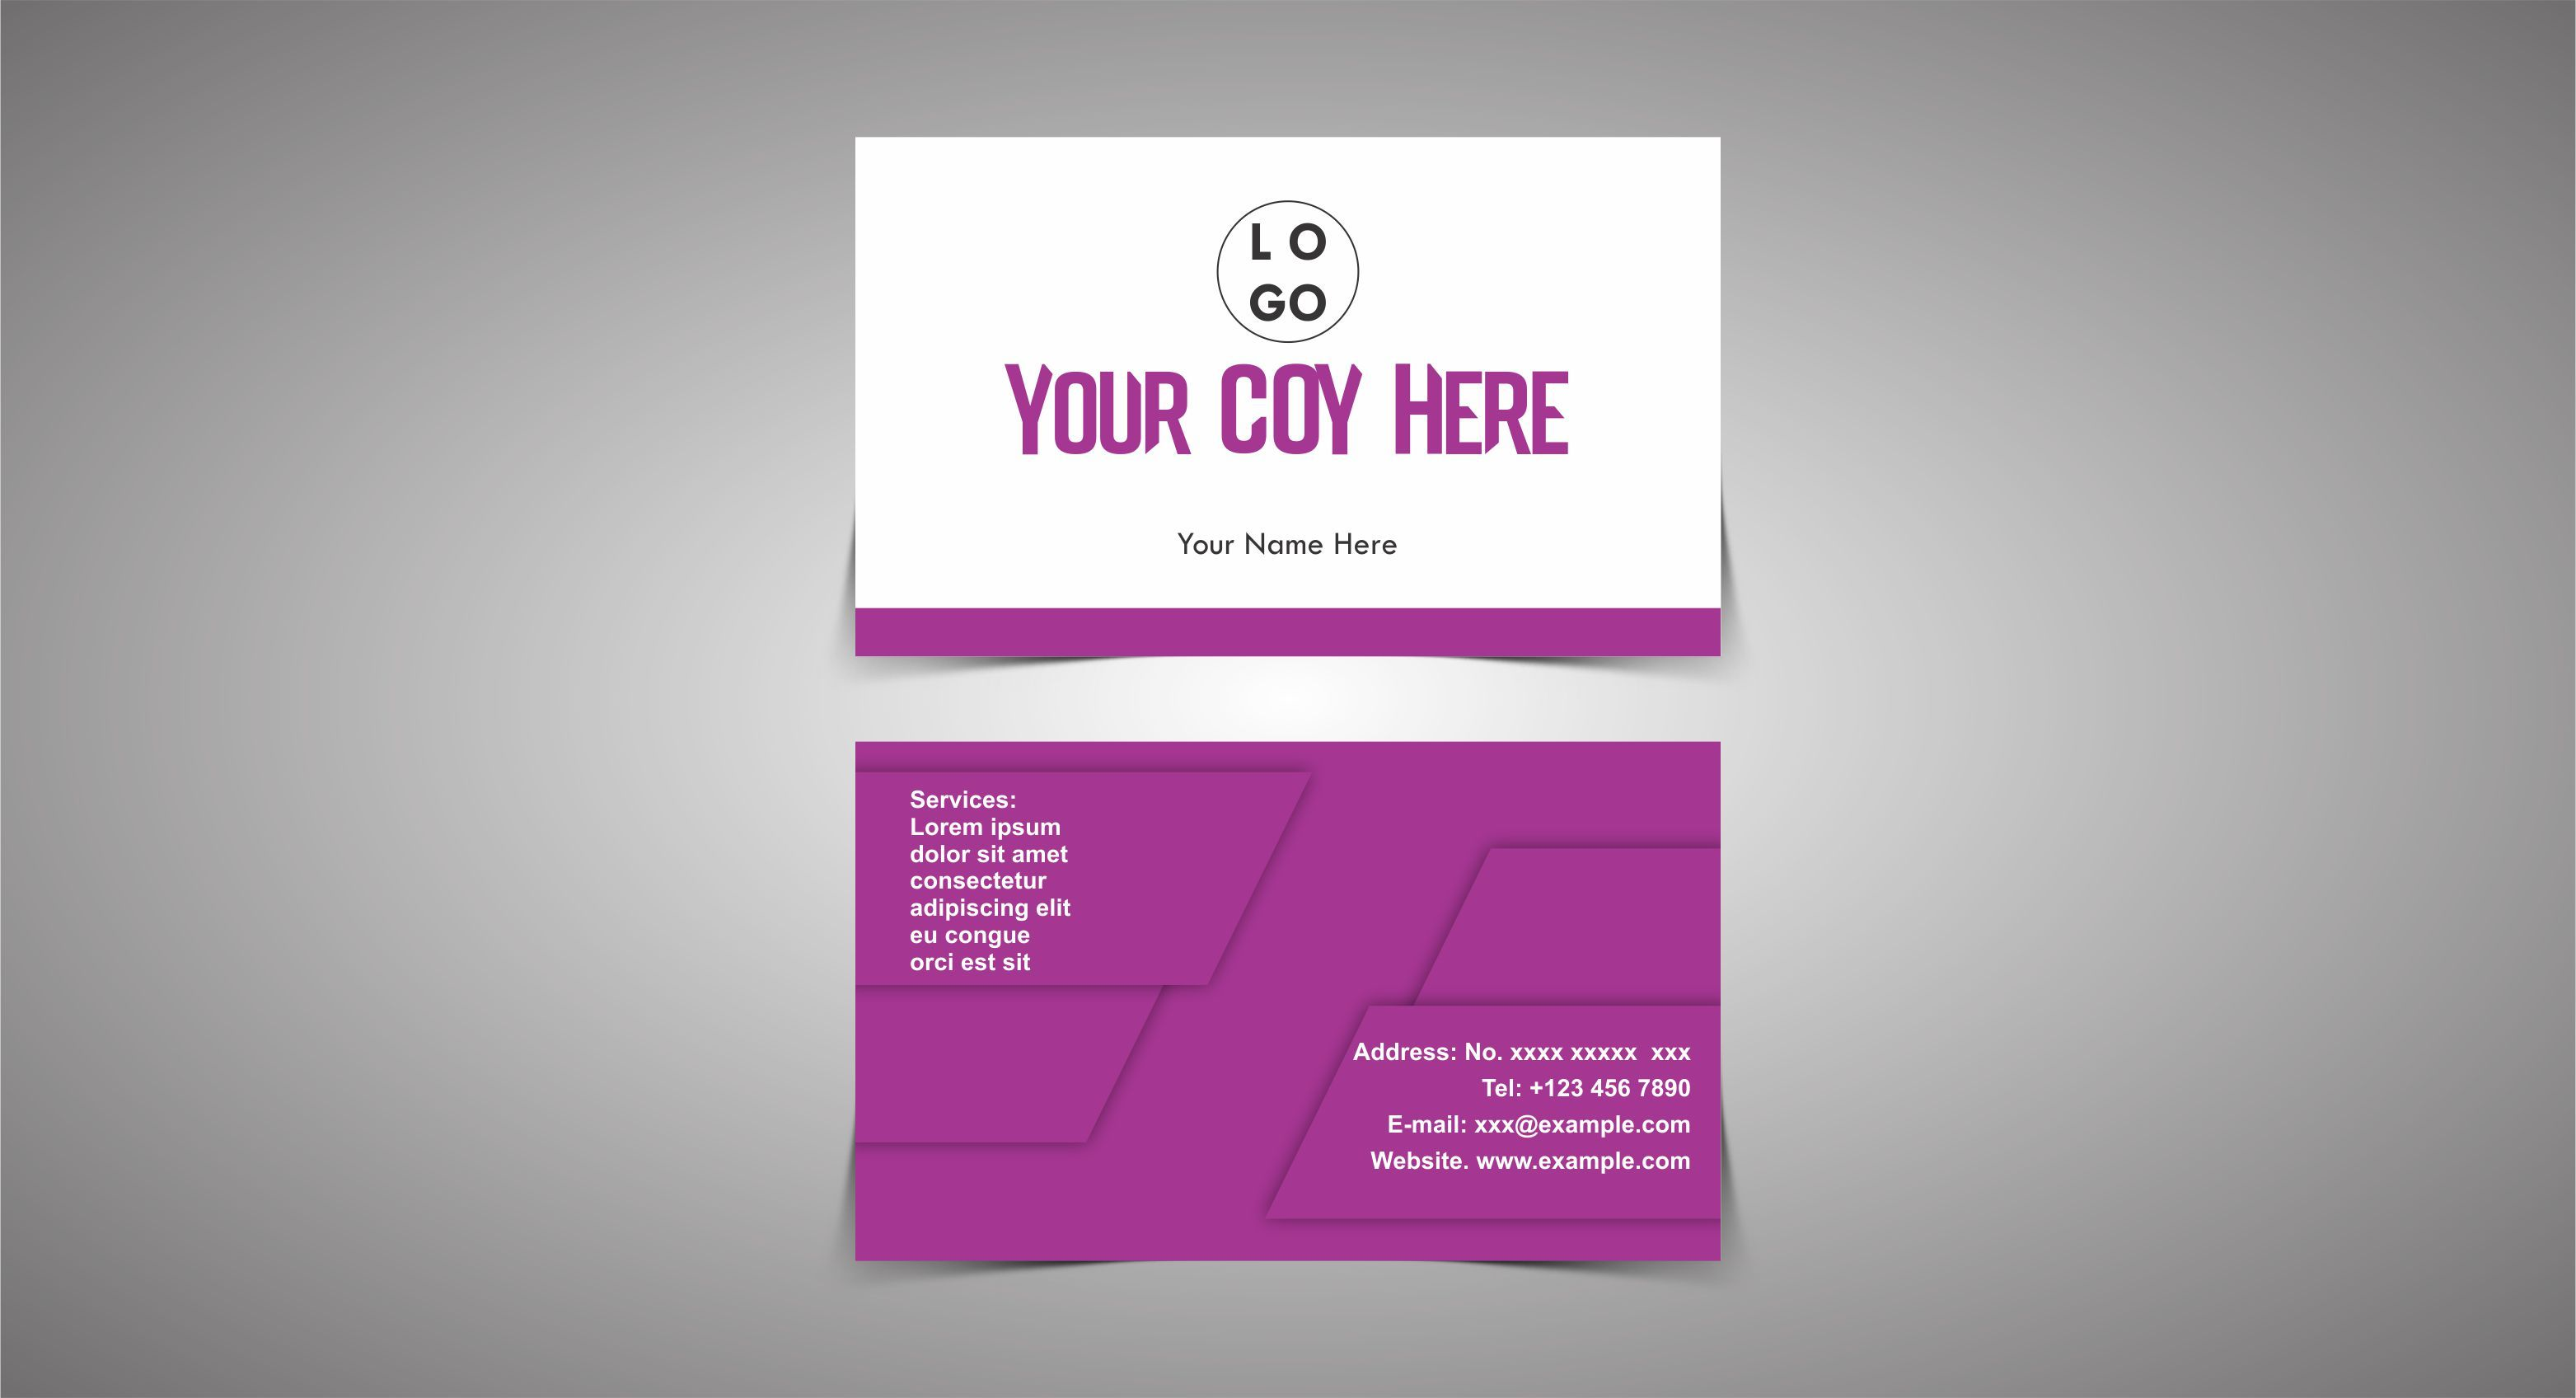 Editable business card template can be tweaked to your satisfaction editable business card template can be tweaked to your satisfaction format adobe illustrator fbccfo Choice Image